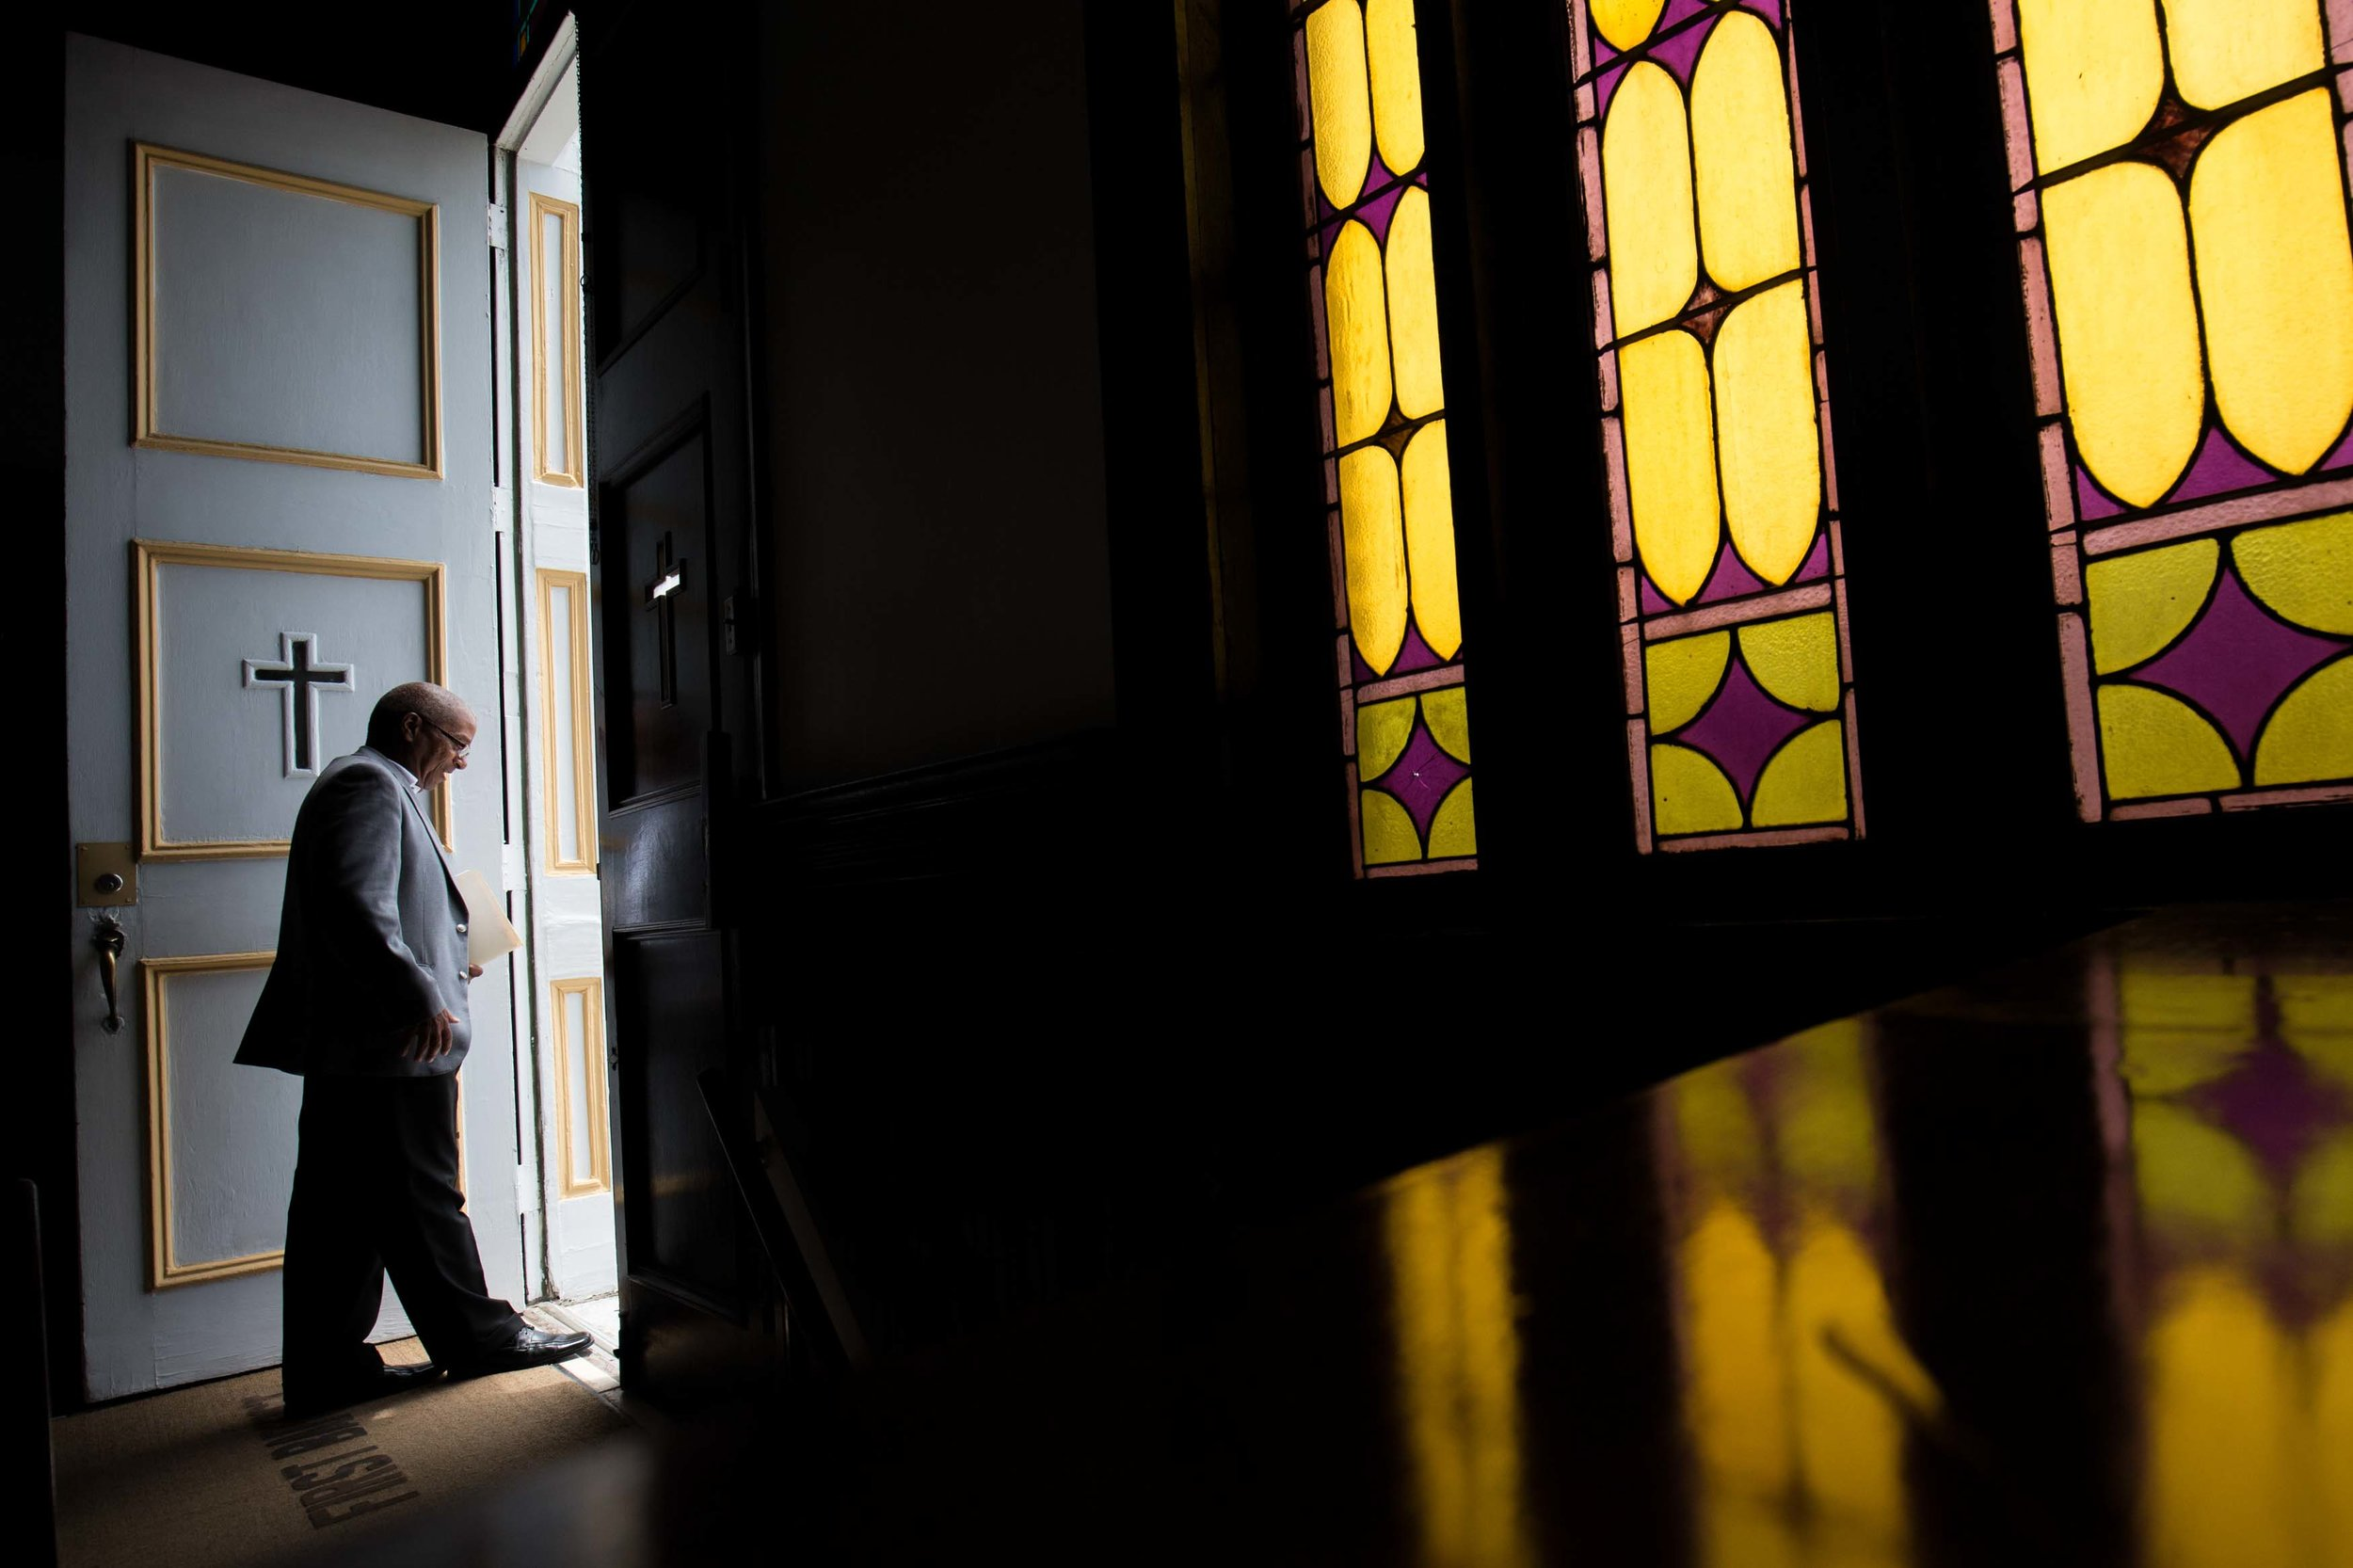 A parishioner at First Baptist Church, a predominantly African-American congregation, leaves after a worship service in Macon, Ga., on Sunday, July 10, 2016. There are two First Baptist Churches in Macon,one black and one white. (AP Photo/Branden Camp)